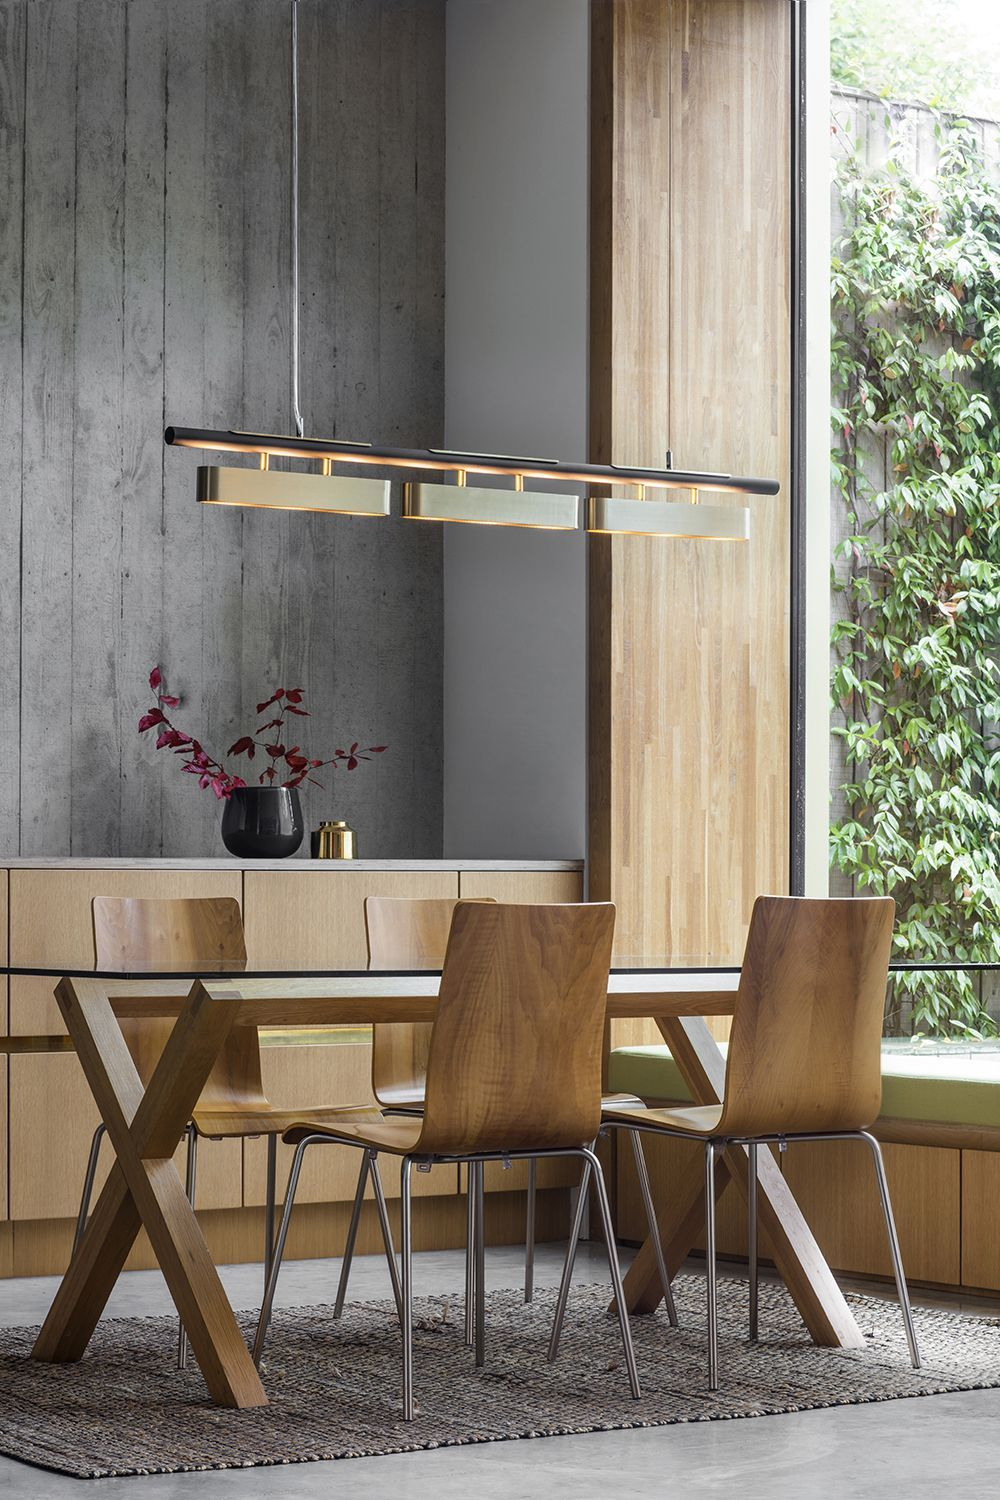 10 Exquisite Suspension Lamps For Rectangular Dining Tables With